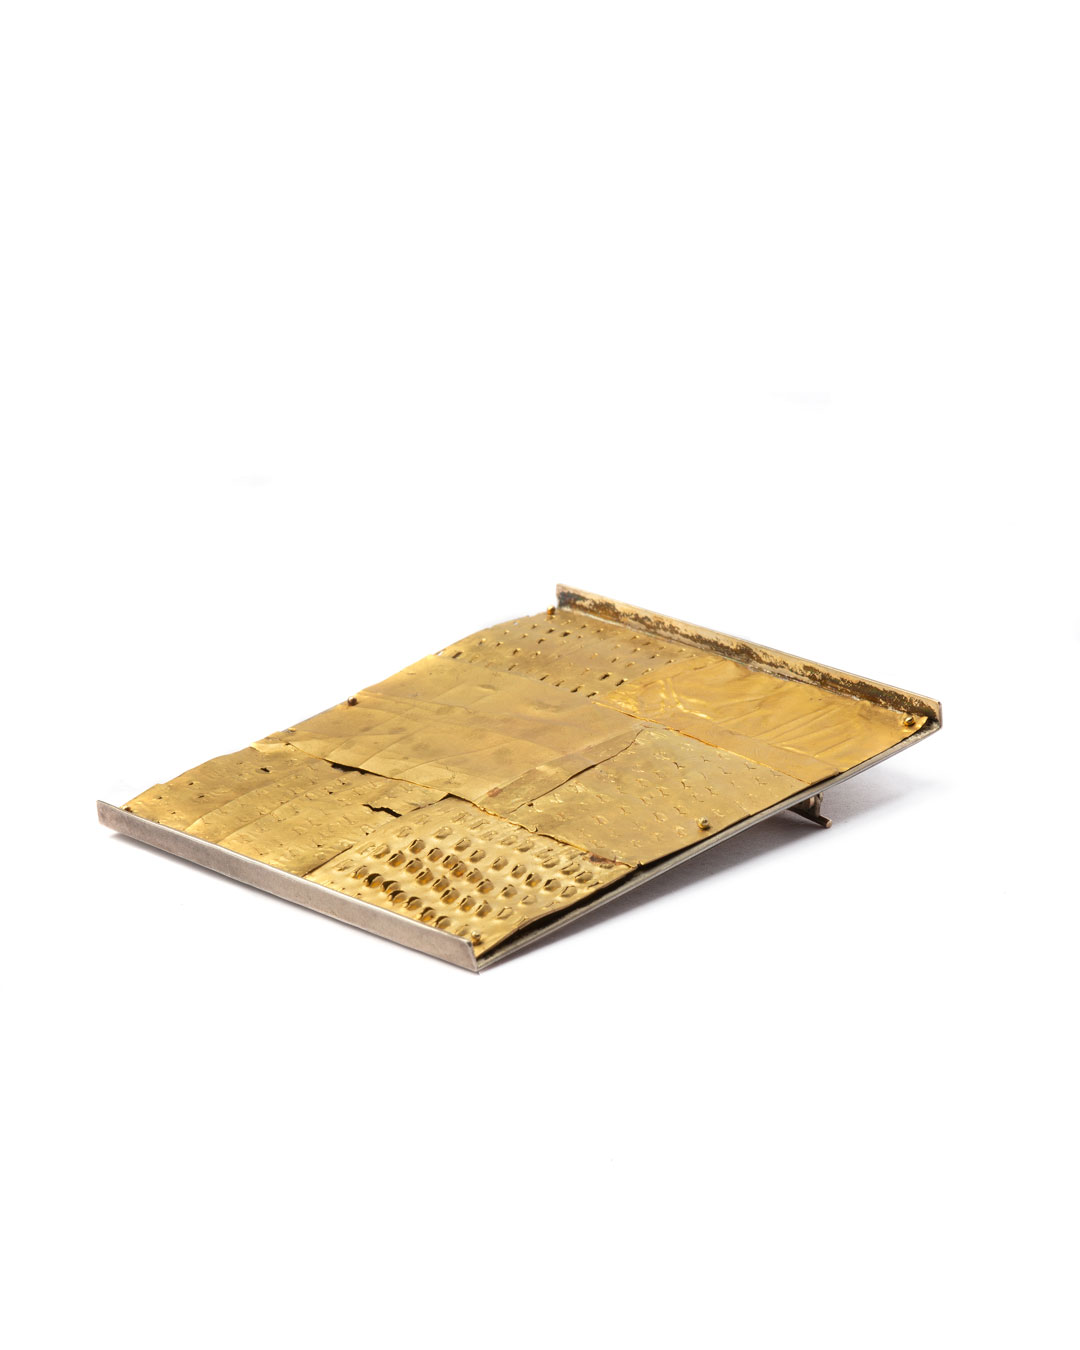 Stefano Marchetti, untitled, 2005, brooch; gold, silver, 63 x 54 x 6 mm, €6100 (picture 1 of 3)